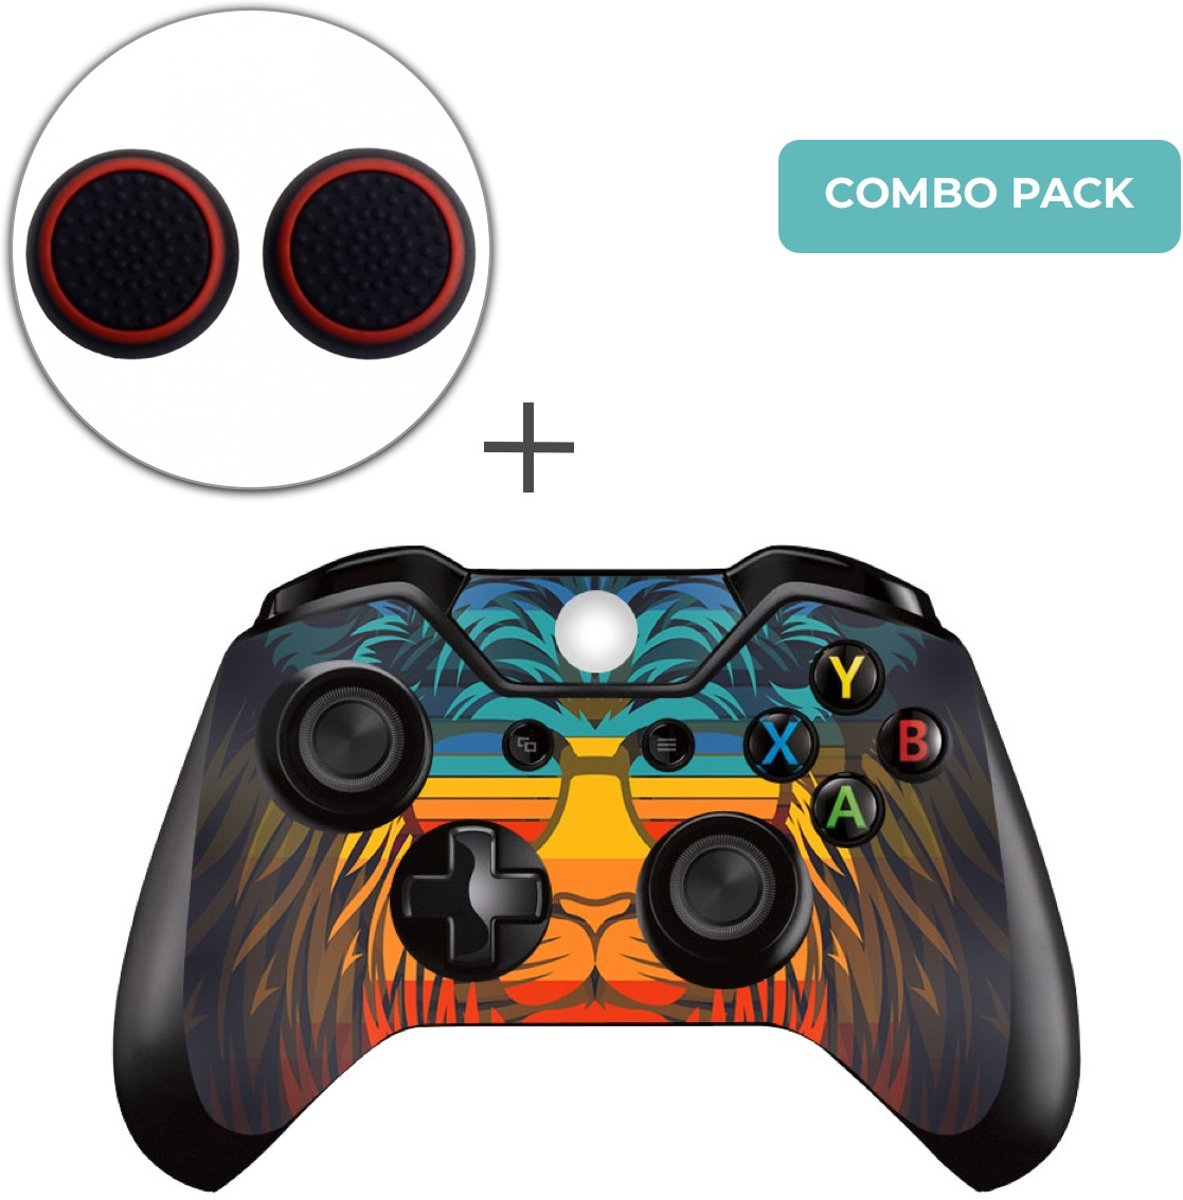 Retro Leeuw Combo Pack - Xbox One Controller Skins Stickers + Thumb Grips